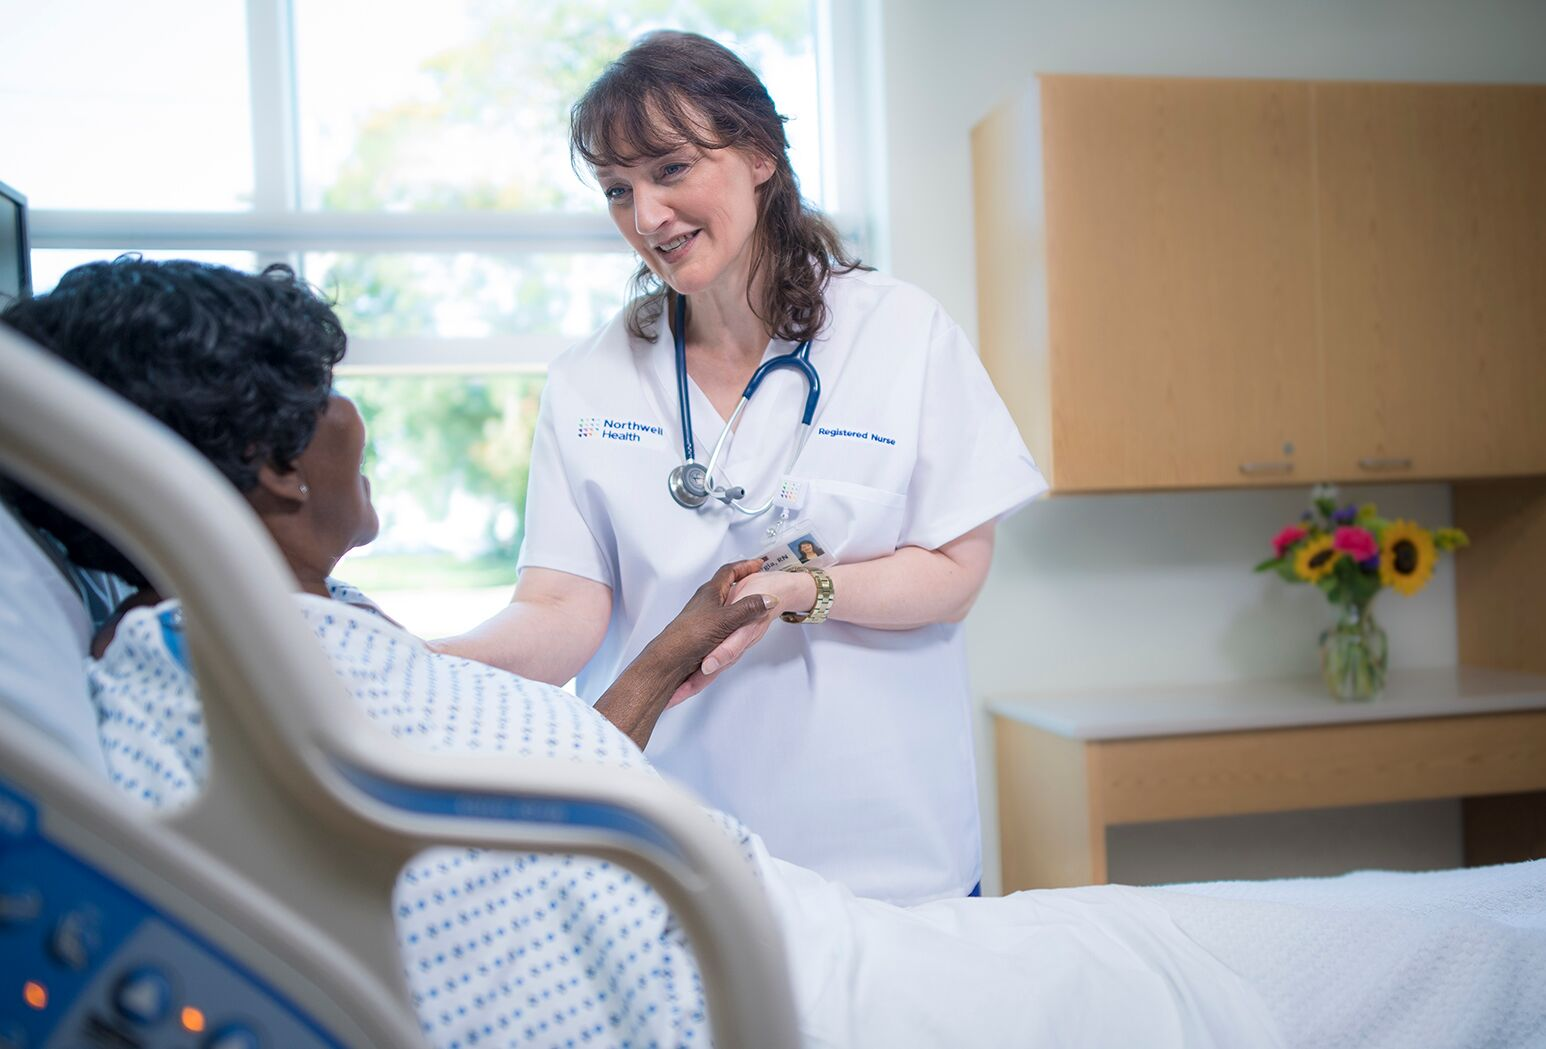 Northwell Health Registered Nursing helping patient